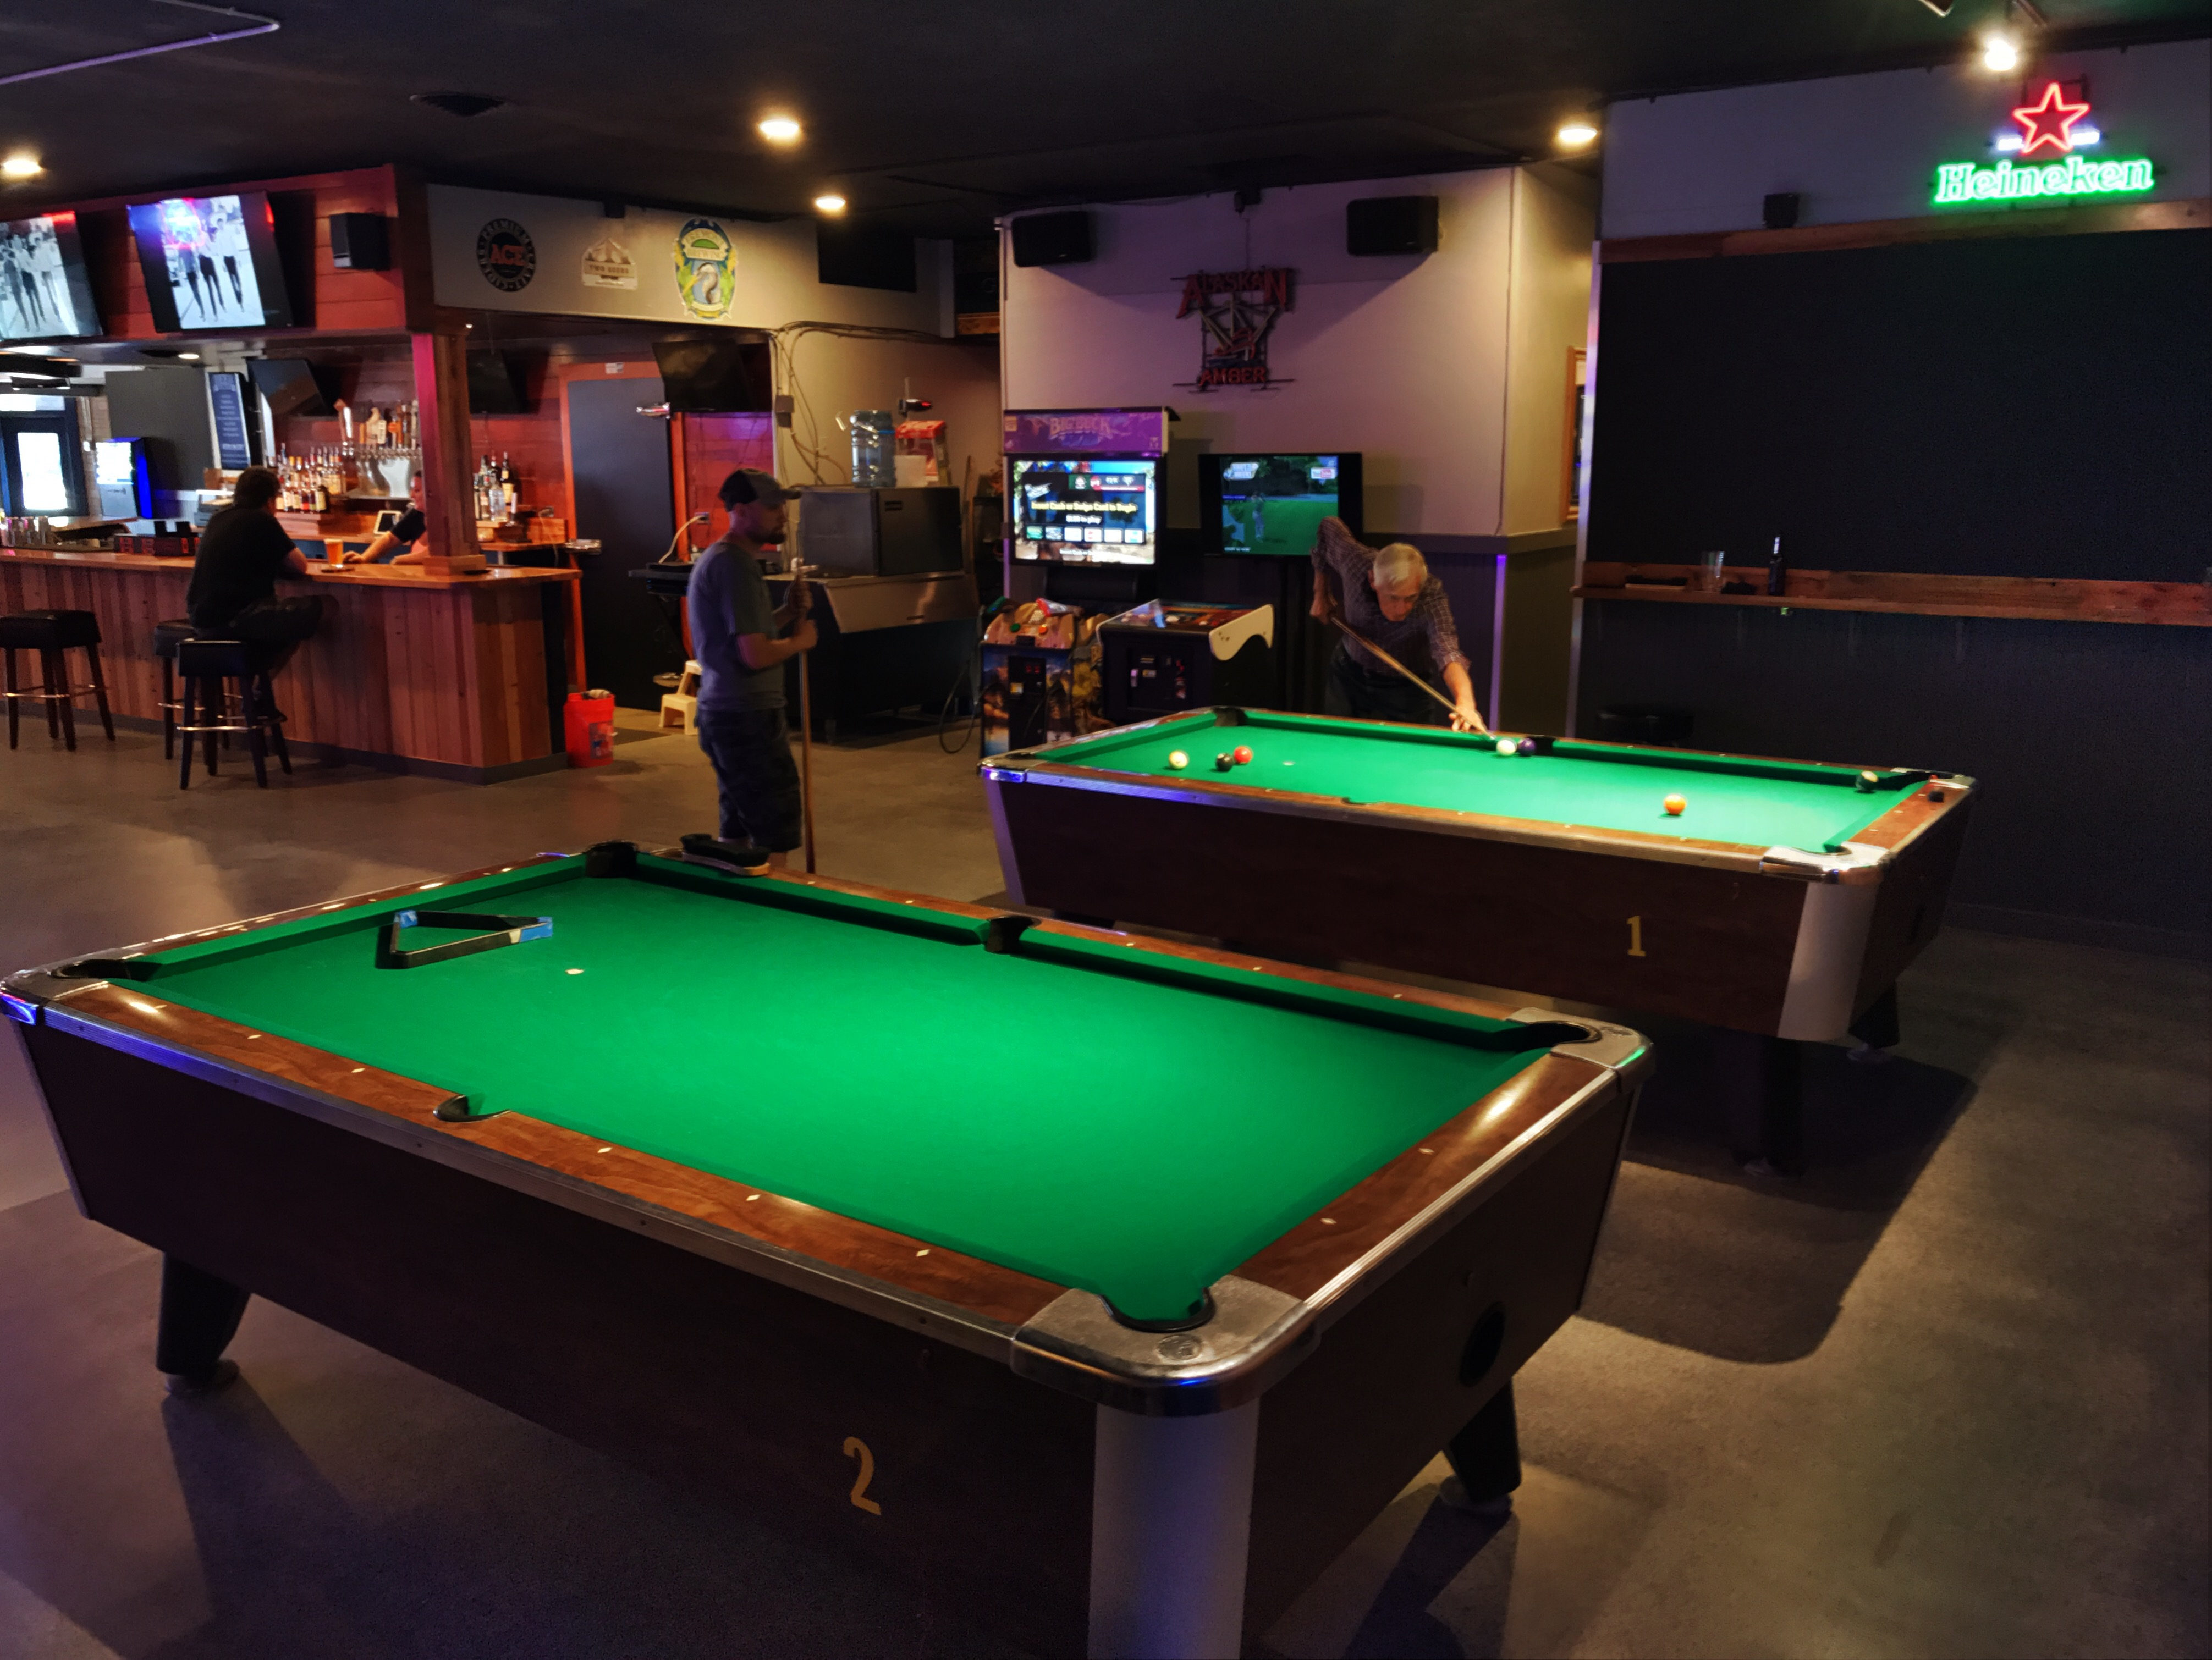 Two Pool Tables Are In The North End Of The Bar. Photo By Patrick Robinson